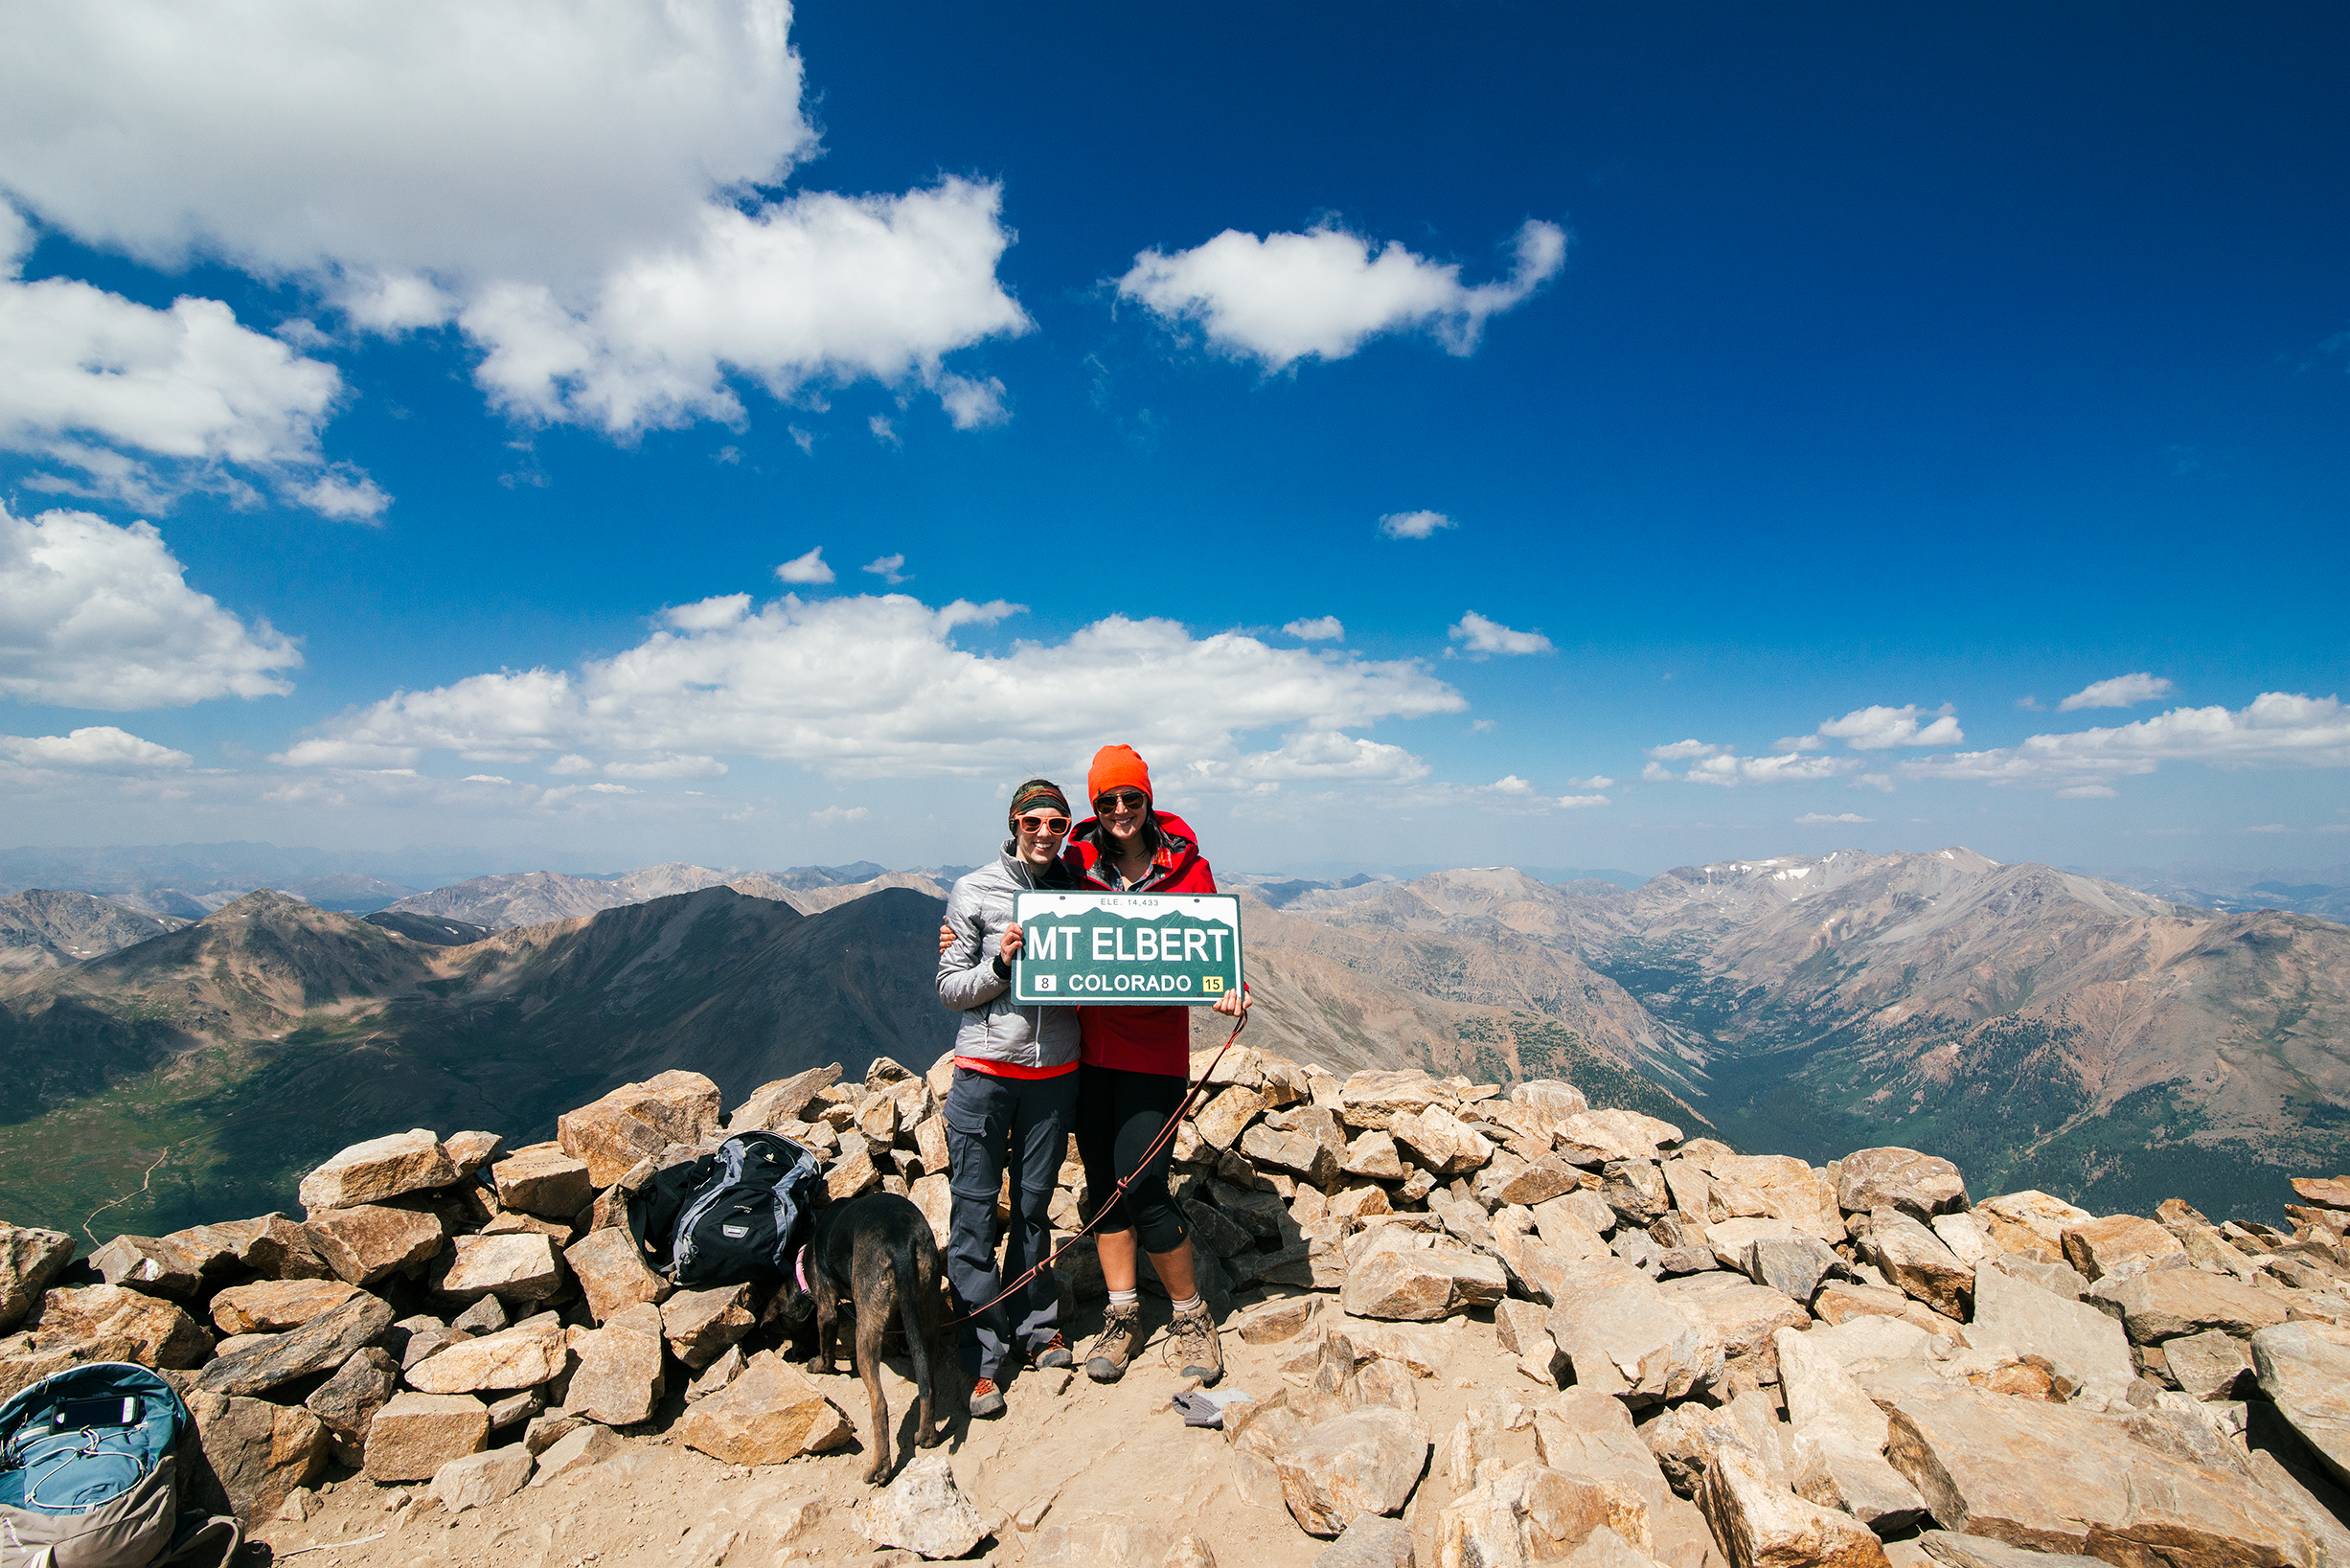 Summit of Mount Elbert